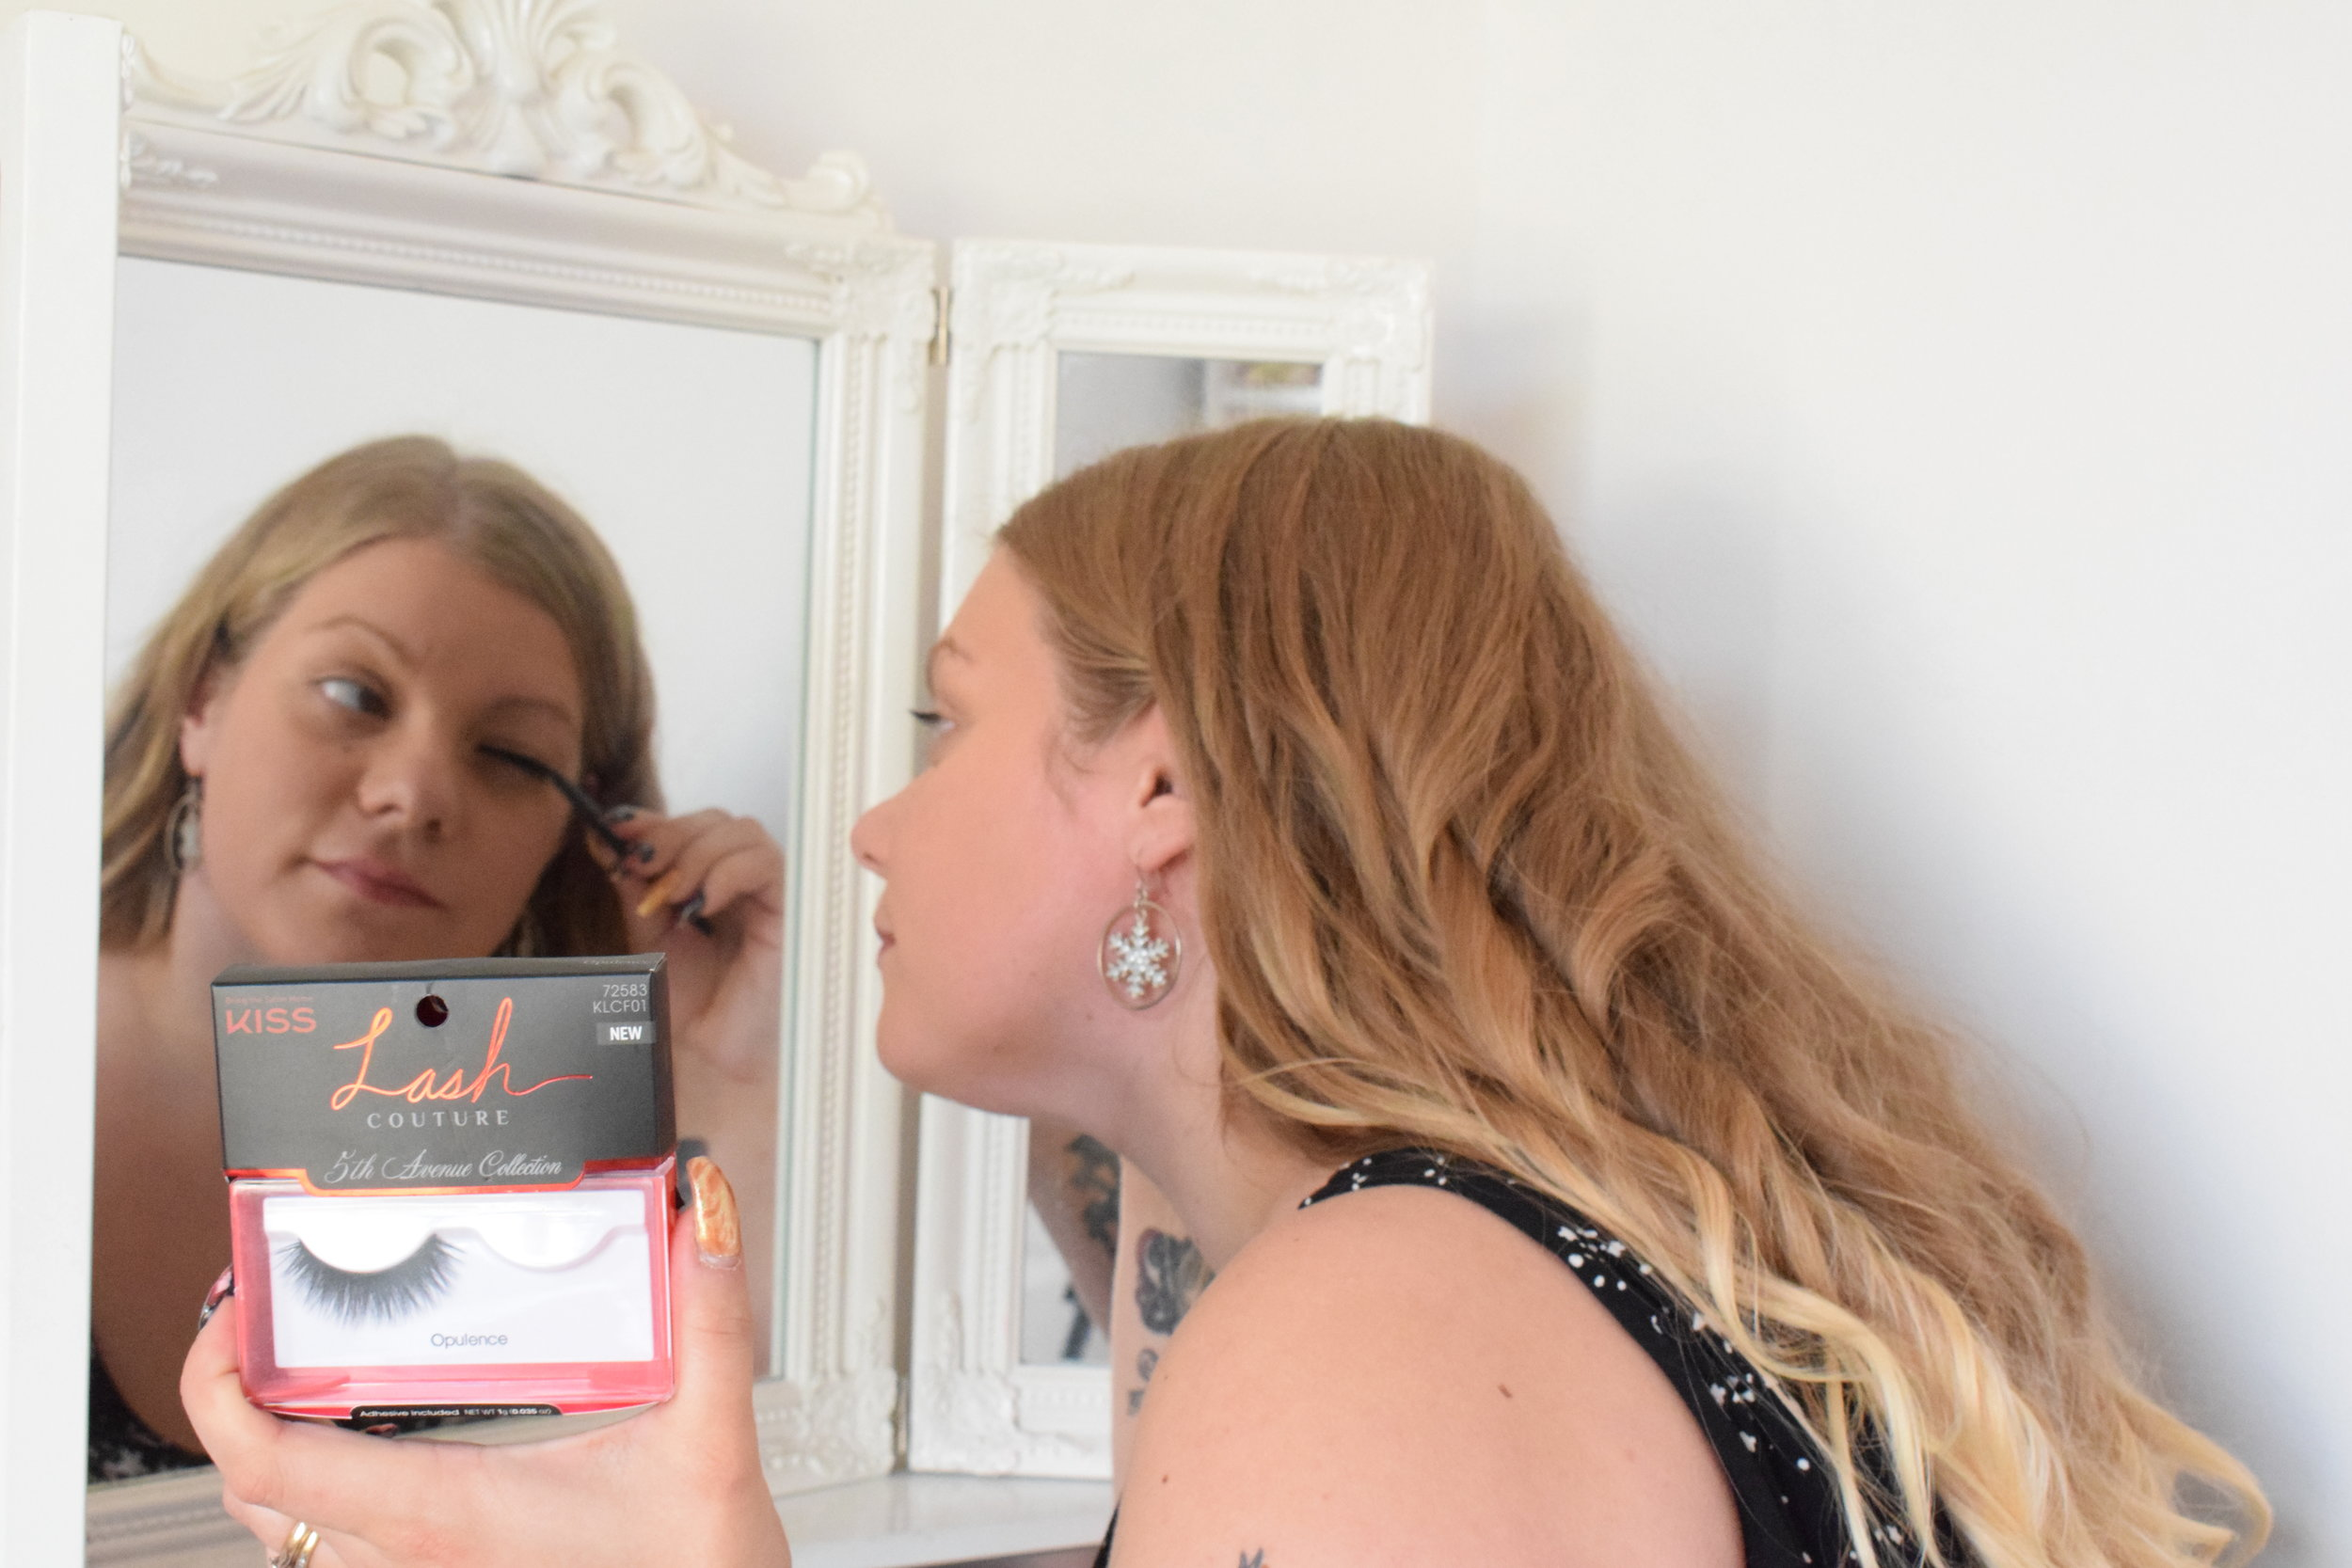 KISS Lash Couture 5th Avenue Edition Me Becoming Mum's Christmas Stocking Fillers for Her